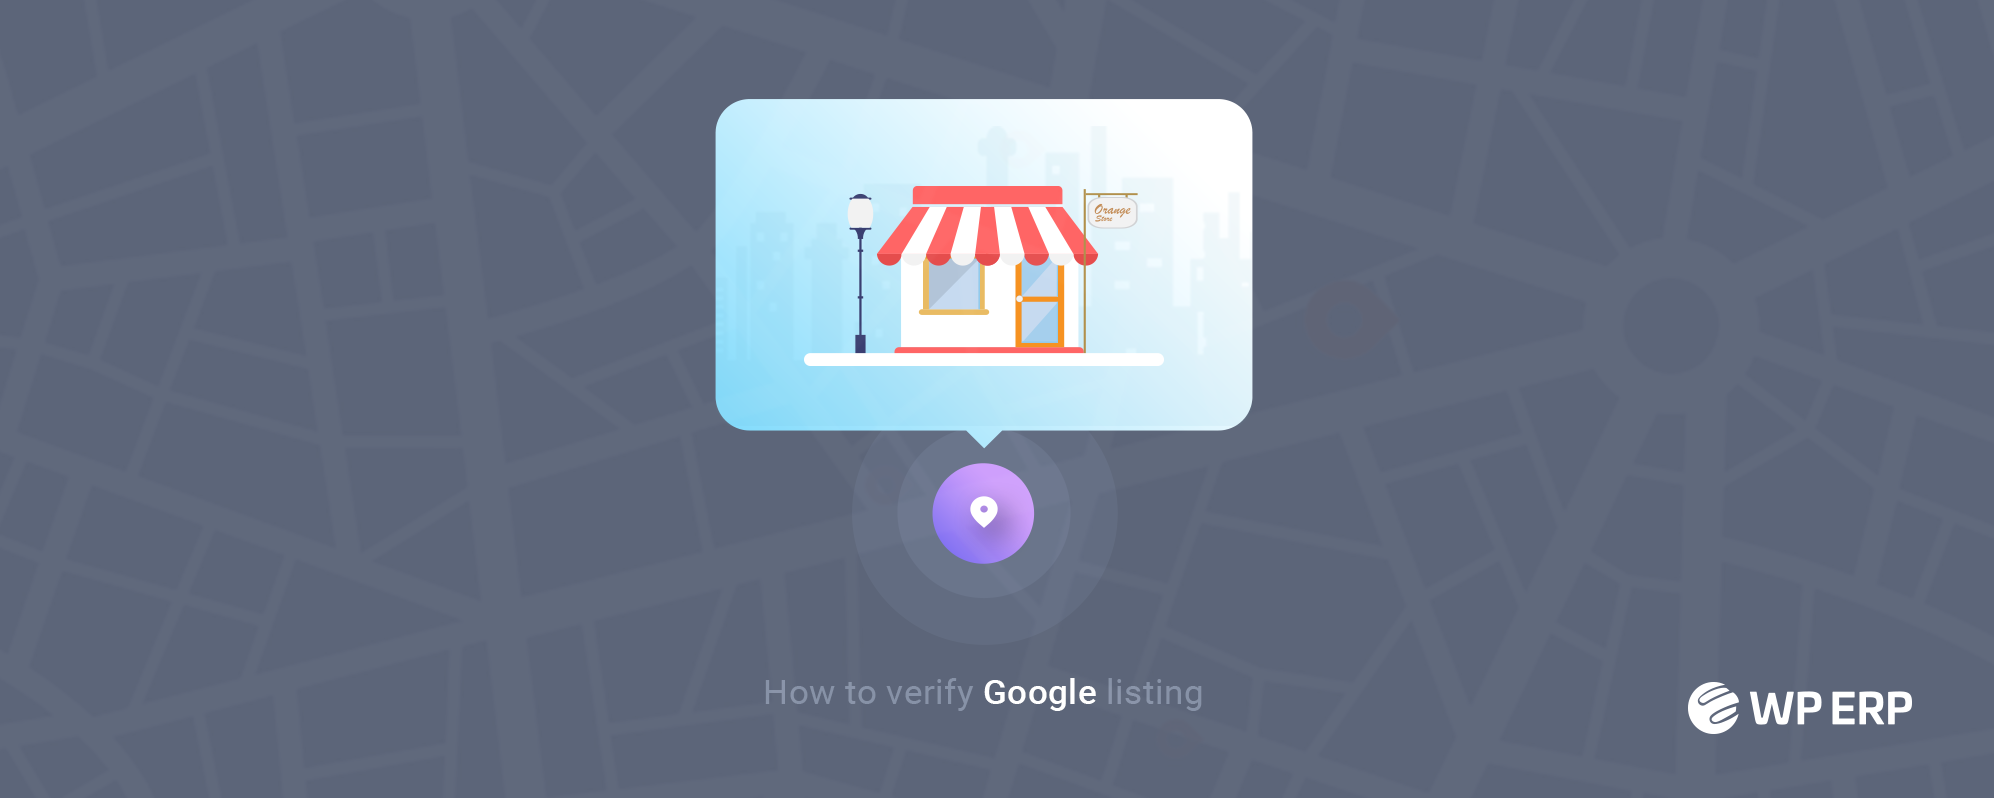 How to Verify Google Listing with Google My Business (5 Easy Steps)